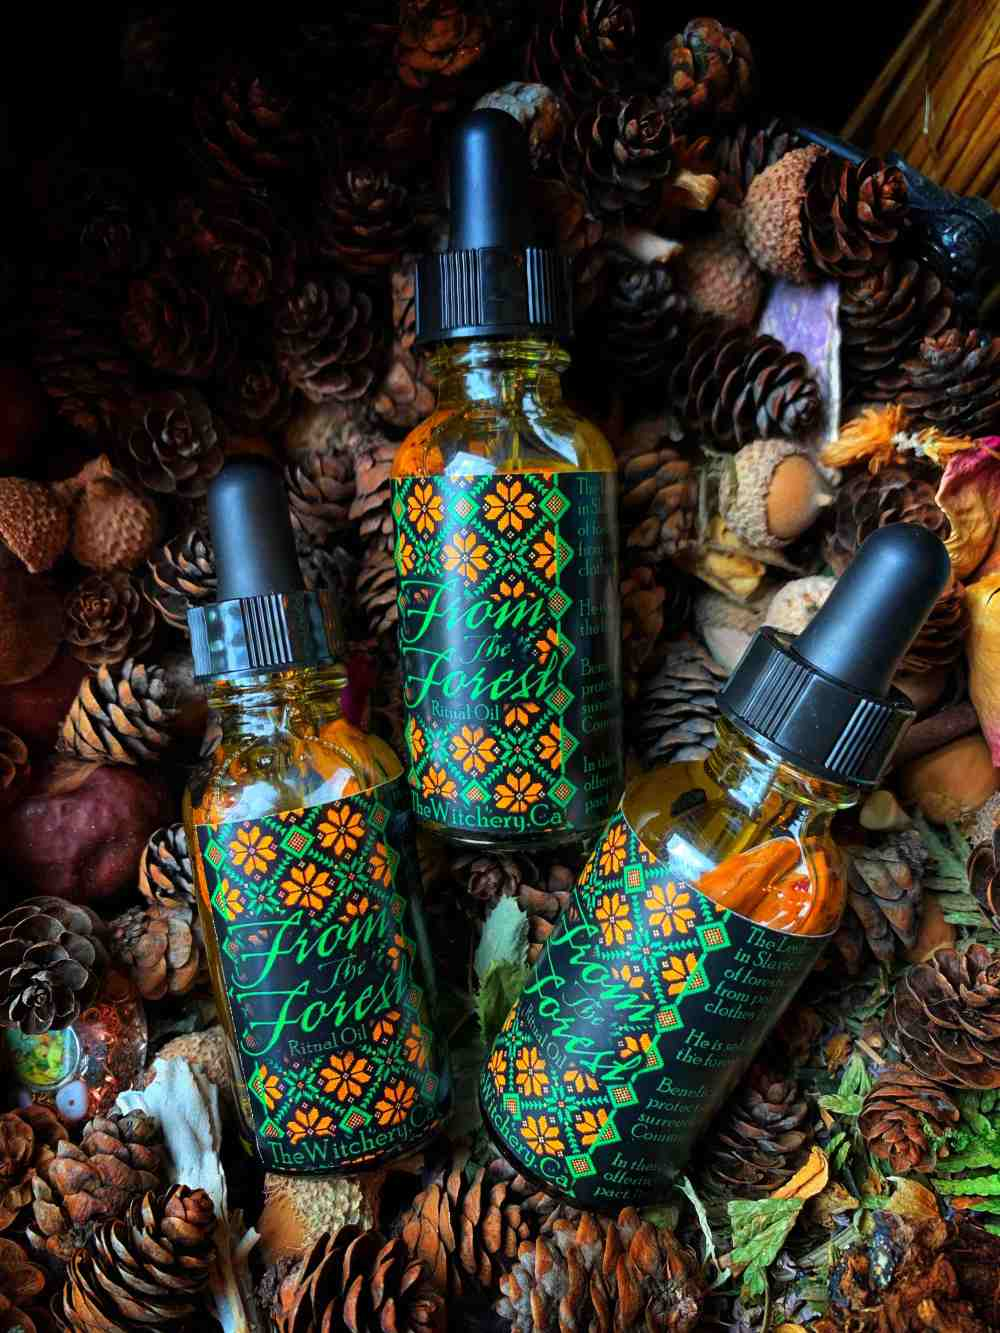 From the Forest Leshy Ritual Oil